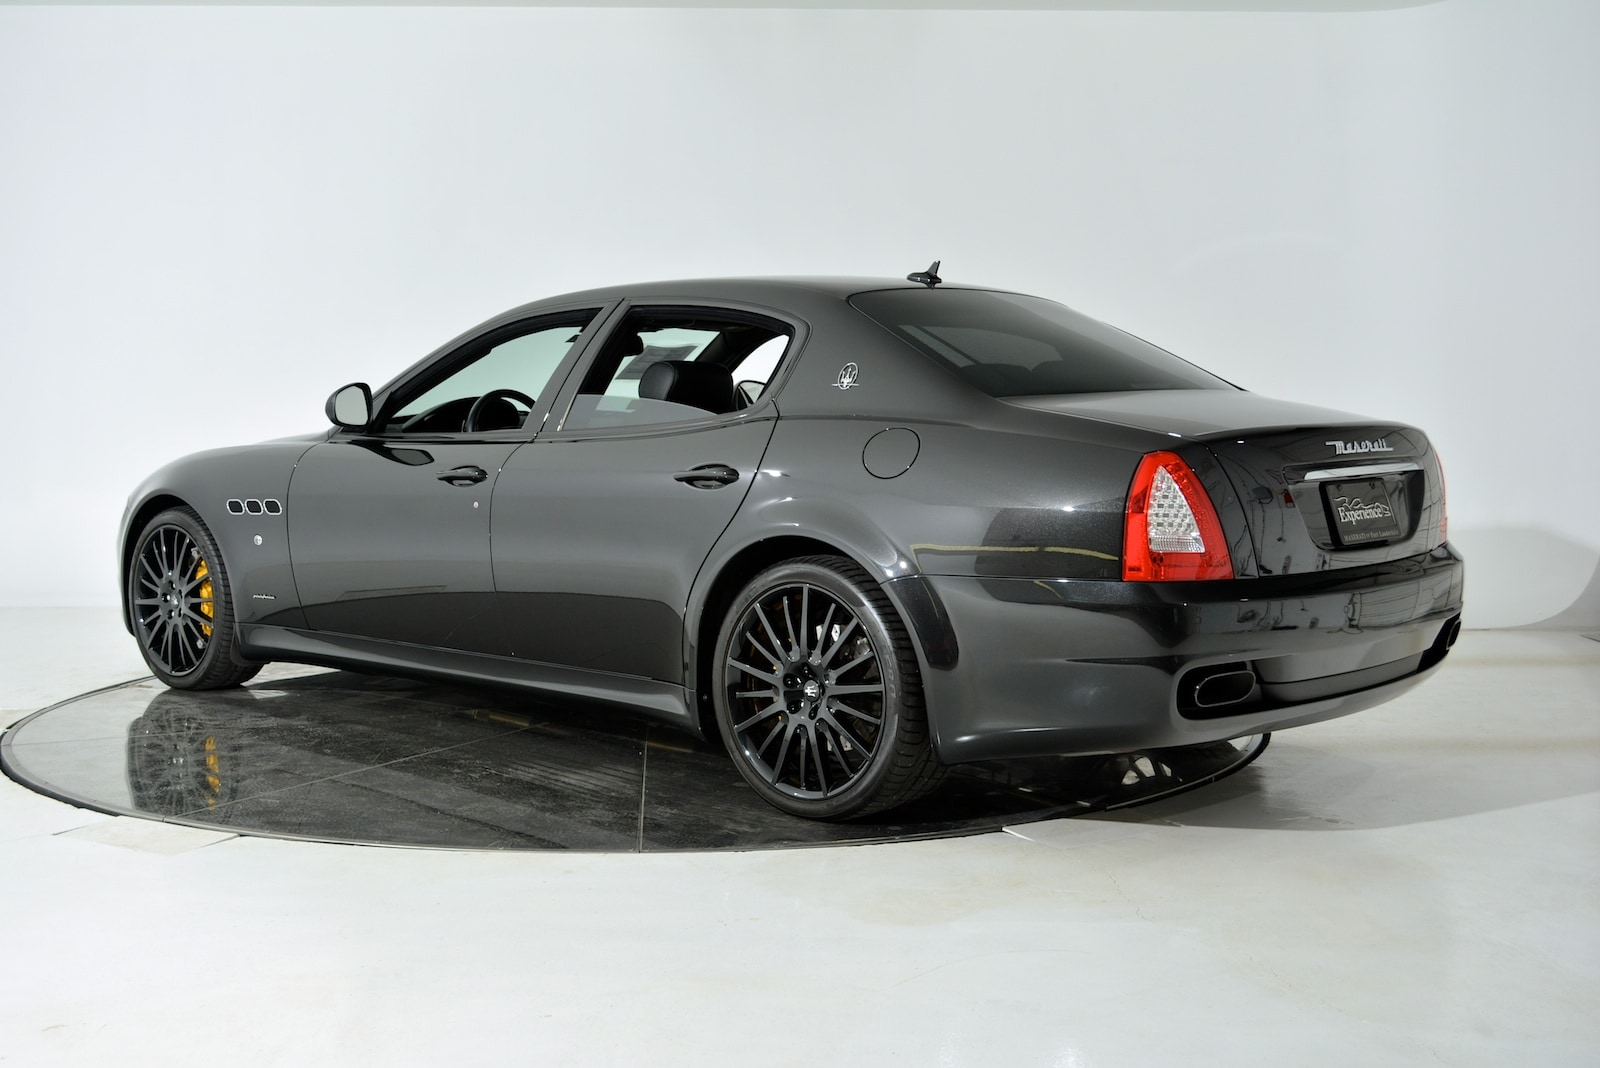 used 2012 maserati quattroporte sport gt s for sale fort lauderdale fl. Black Bedroom Furniture Sets. Home Design Ideas